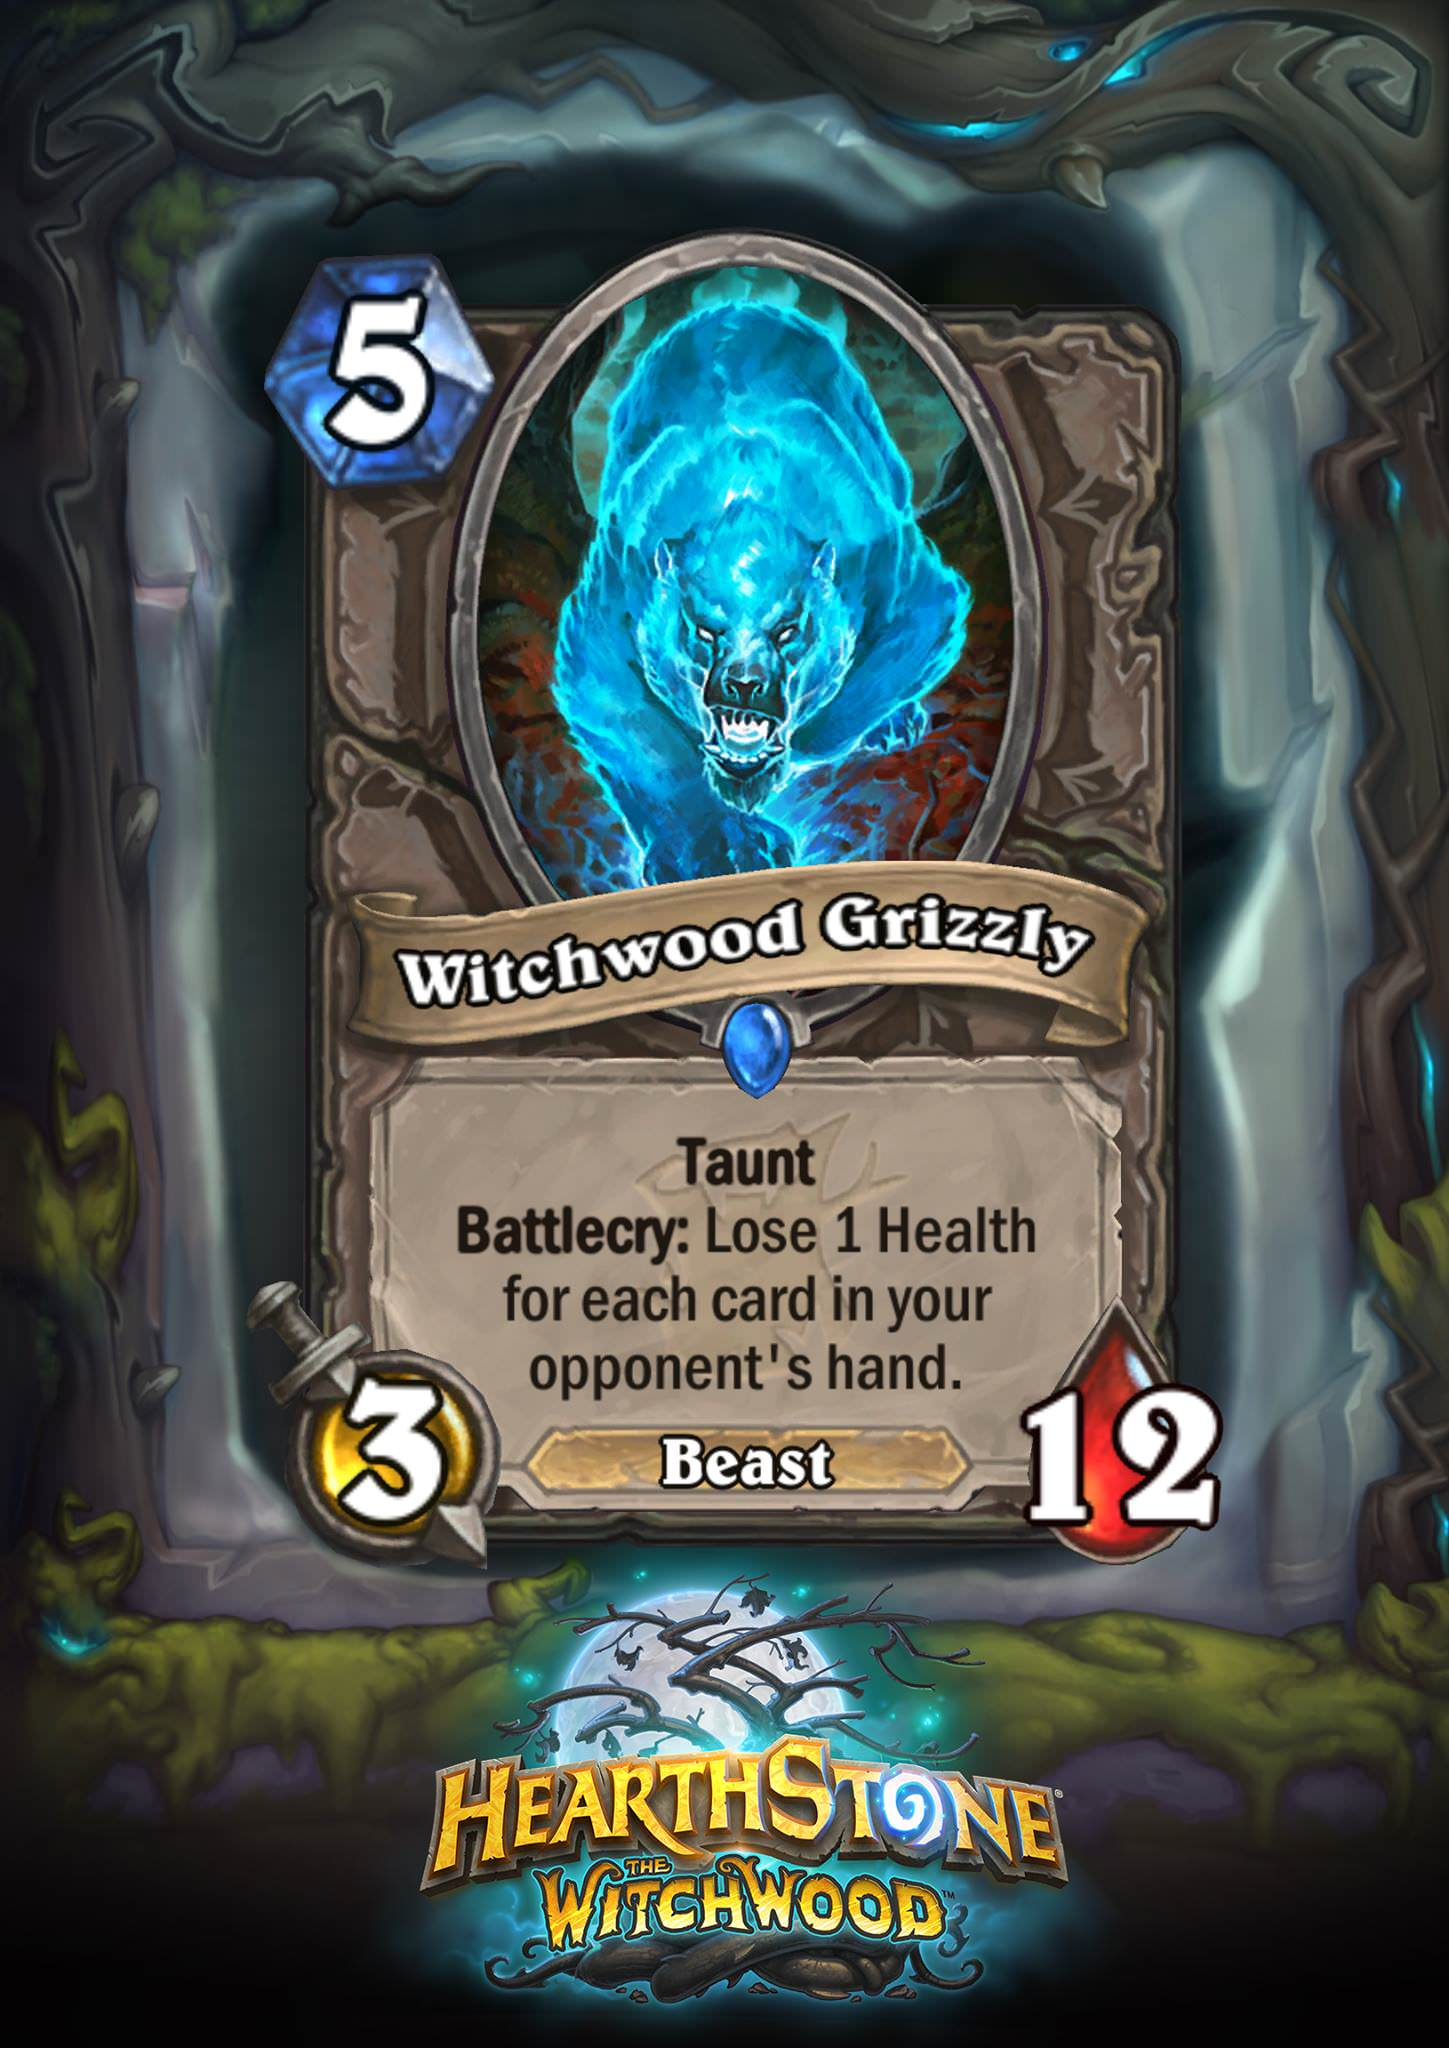 Hearthstone Witchwood: Analysis and predictions of the cards